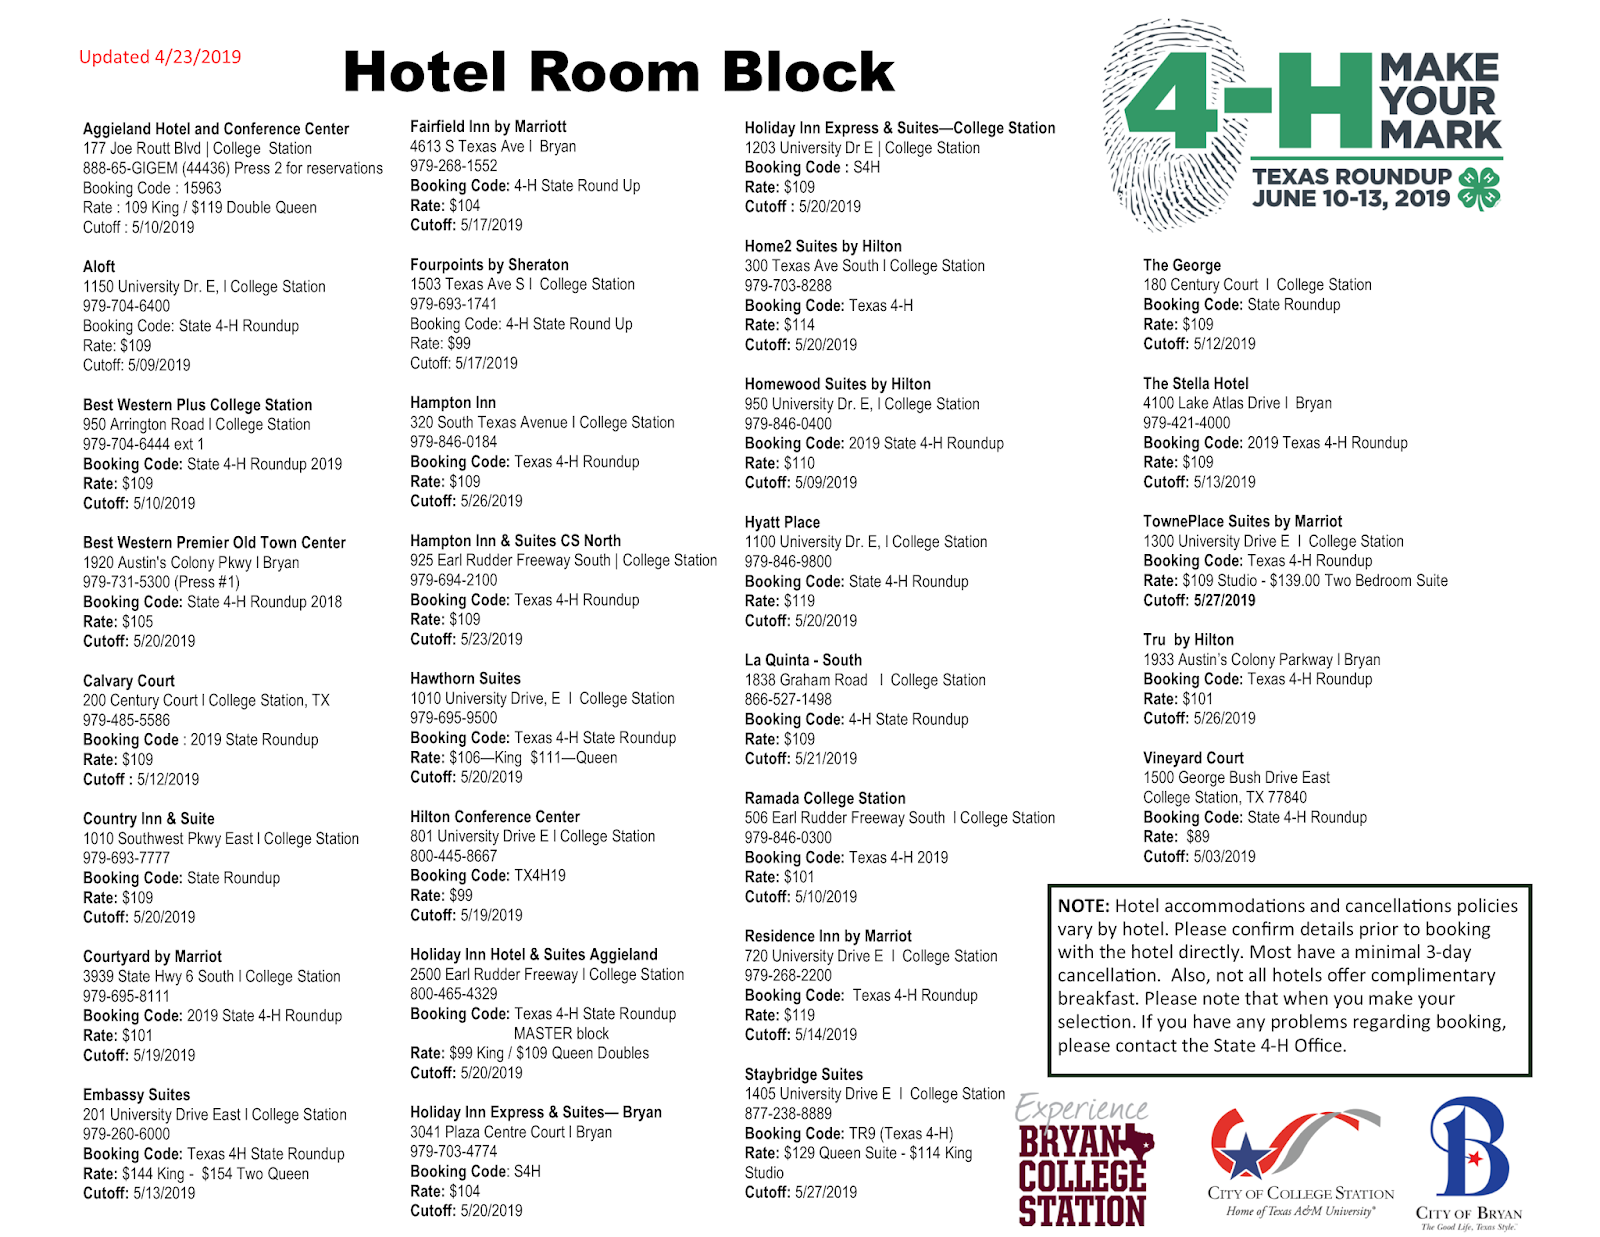 Texas 4-H Roundup: Hotel Room Block